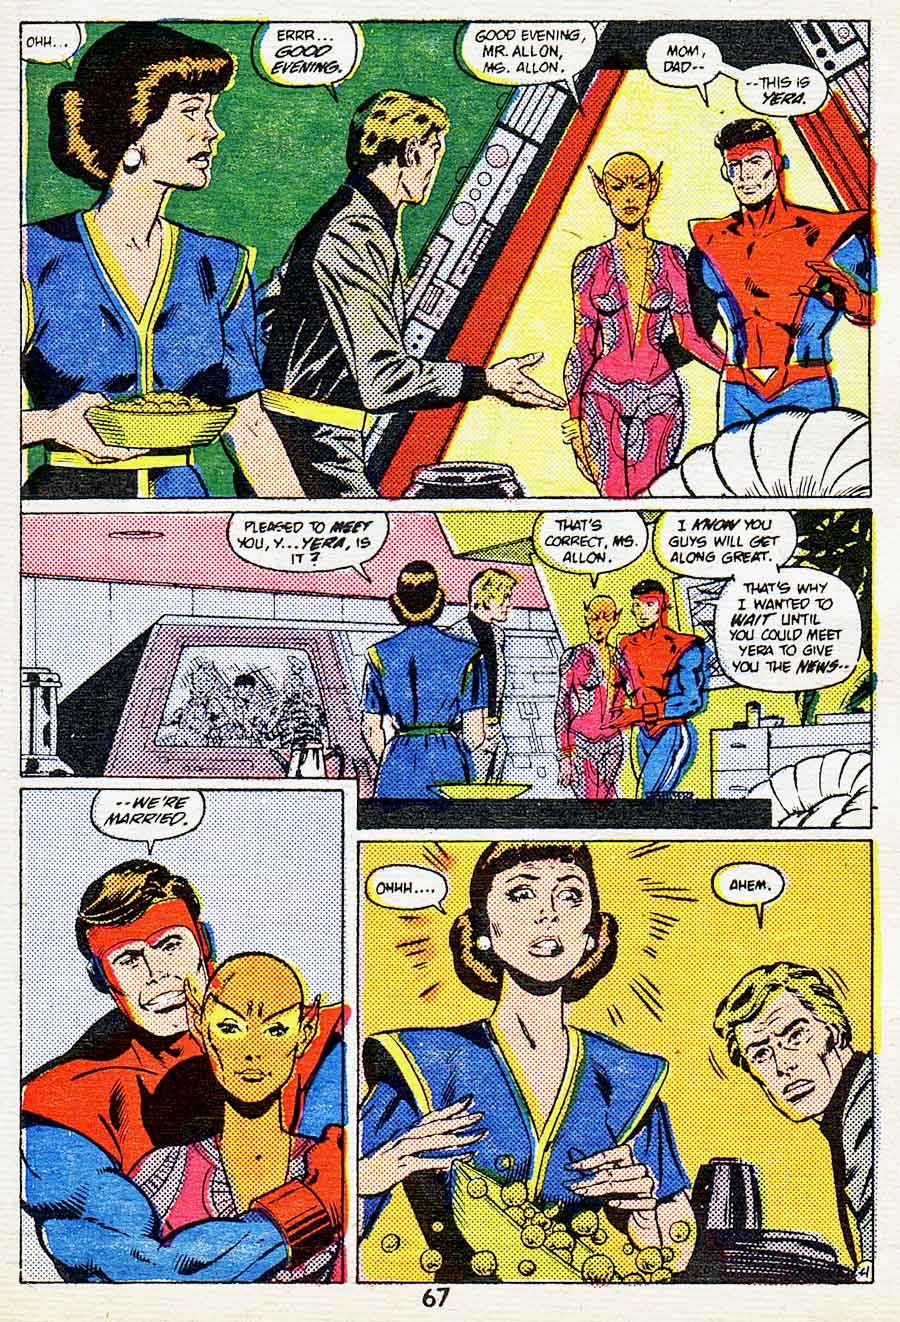 "Best of DC Blue Ribbon Digest #61: Year's Best Comic Stories 1984 - Legion of Super-Heroes: ""Guess What's Coming to Dinner?"" by Paul Levitz, Keith Giffen, George Tuska and Larry Mahlstedt"